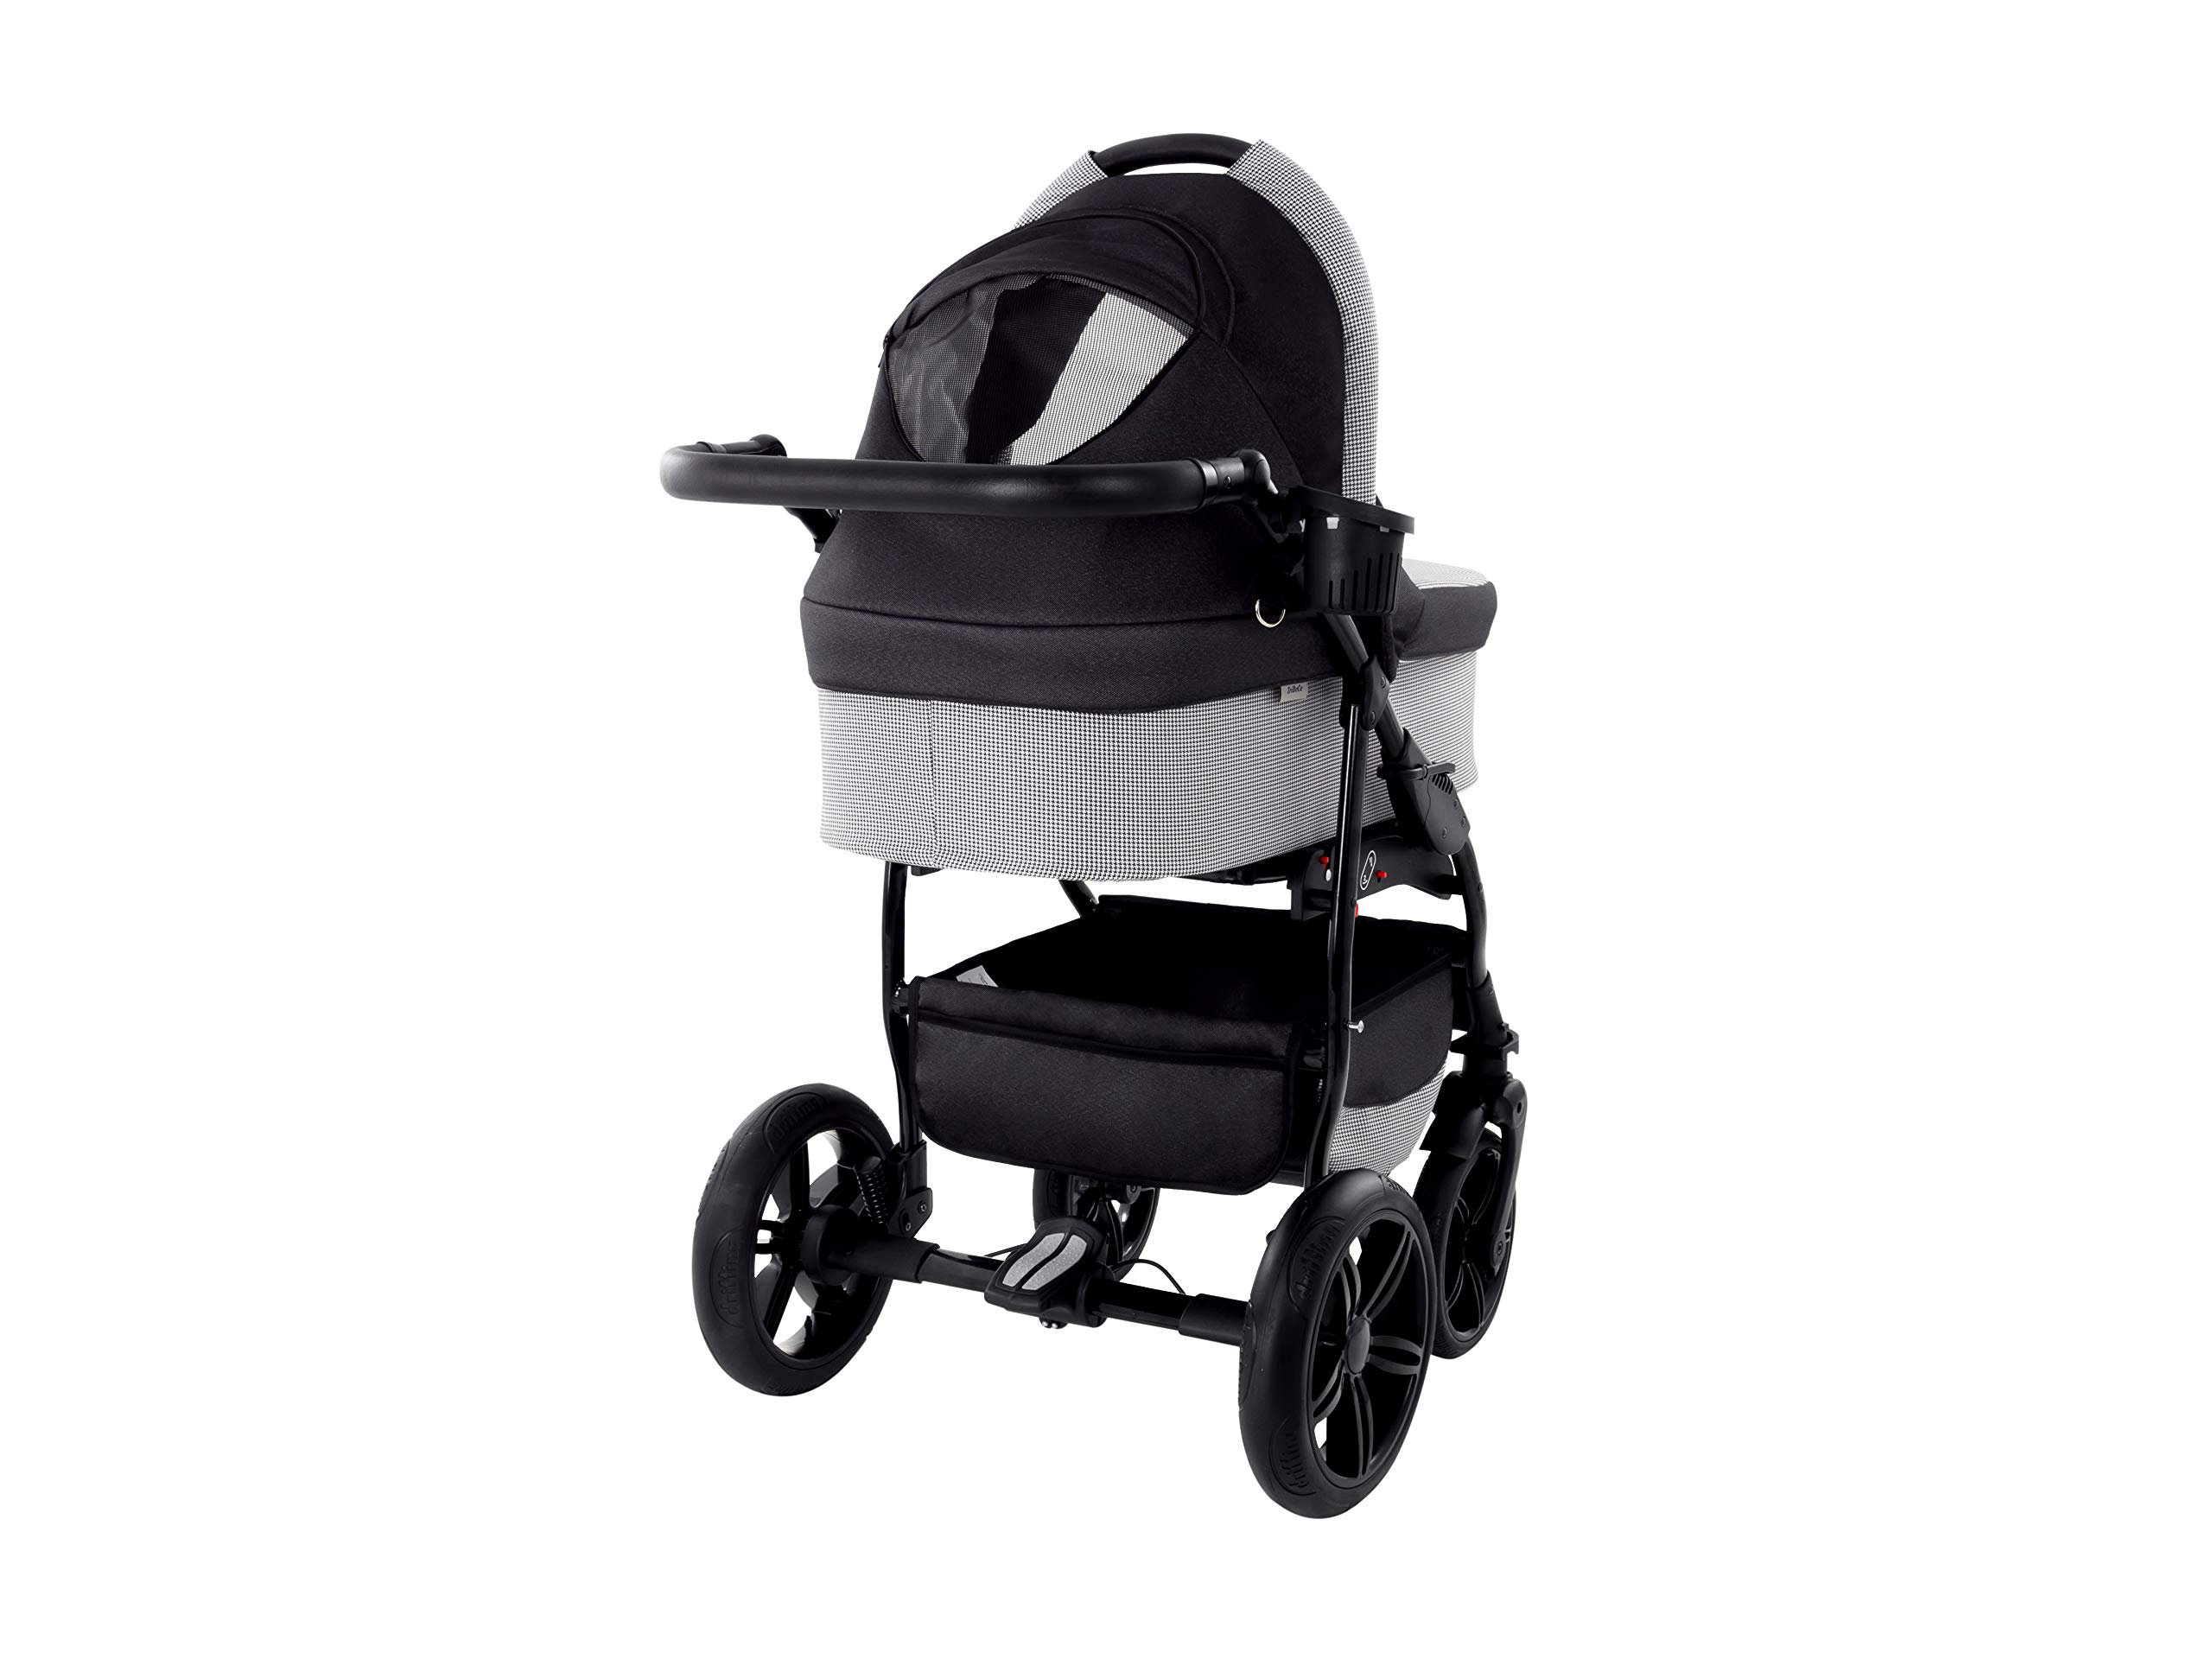 Baby Pram Zeo Wind 3in1 Set - All You Need! carrycot Gondola Buggy Sport Part Pushchair car seat (54) Zeo 3 in 1 combination stroller complete set, with reversible seat units to the buggy, child car seat or baby carriage The baby carriage is suitable for babies from 0 months to 3 years (0-15 kg) Has 360 ° swiveling wheels, four-fold suspension, four-stage backrest, five-position adjustable footrest and a five-point safety belt 5